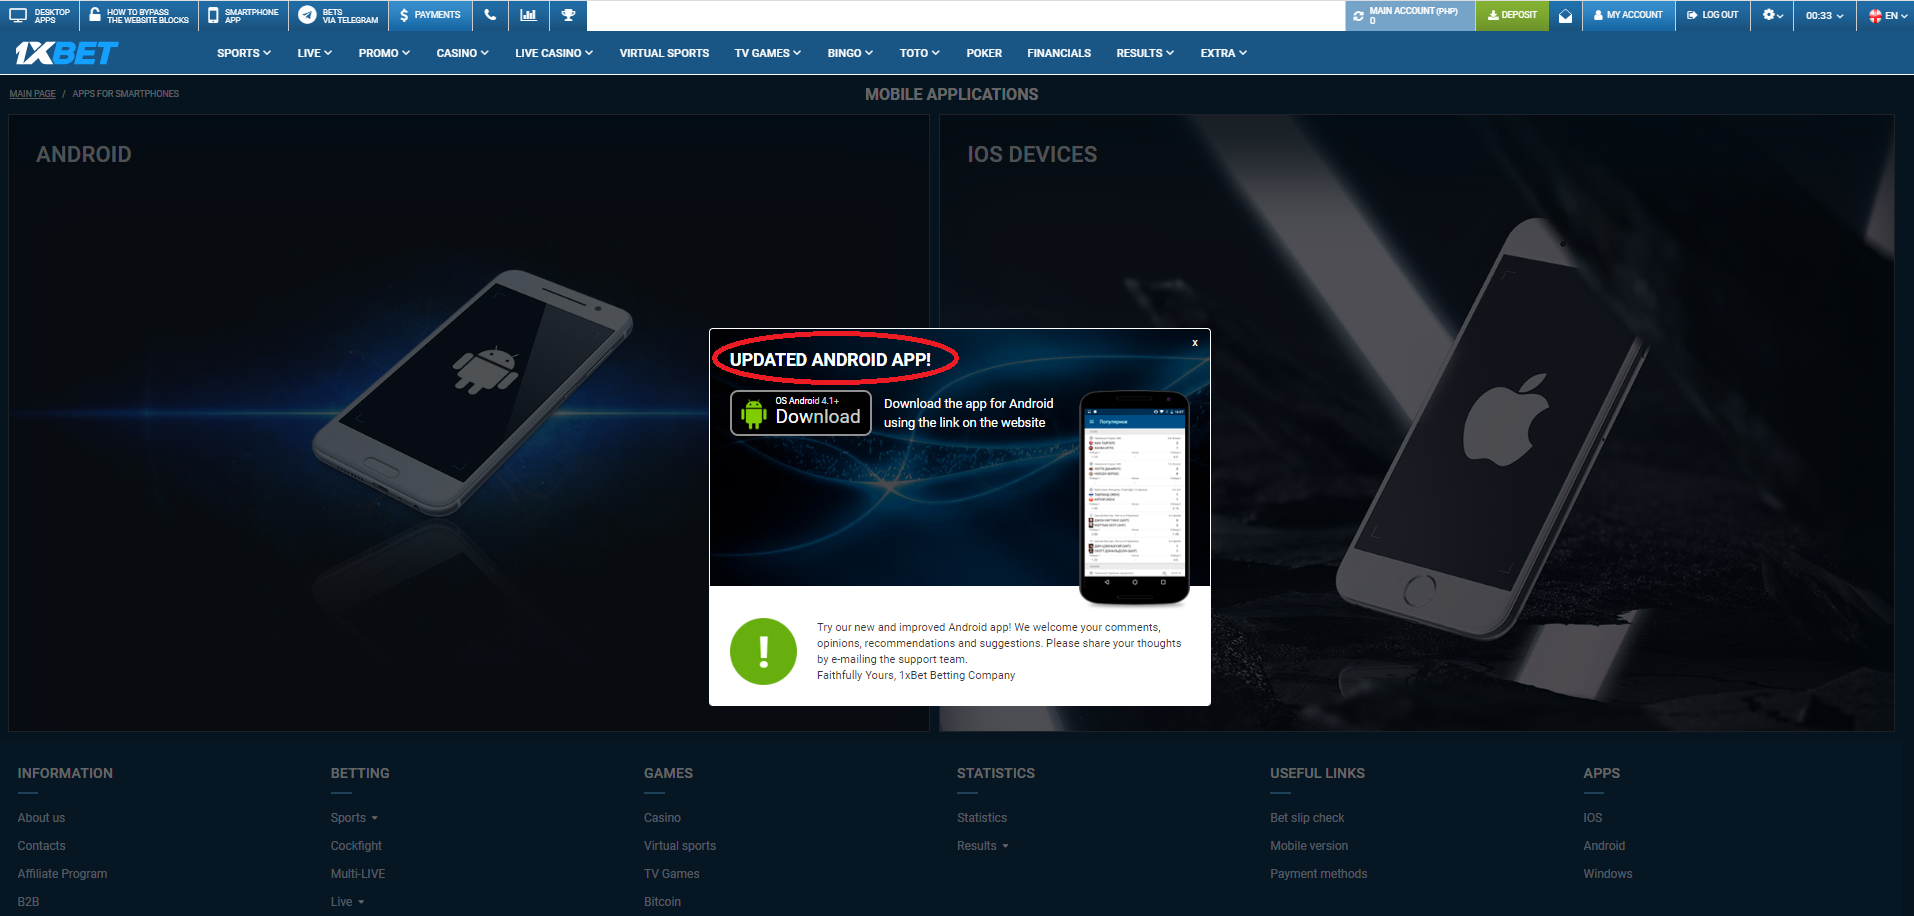 Possible problems with 1xBet login and mobile login option